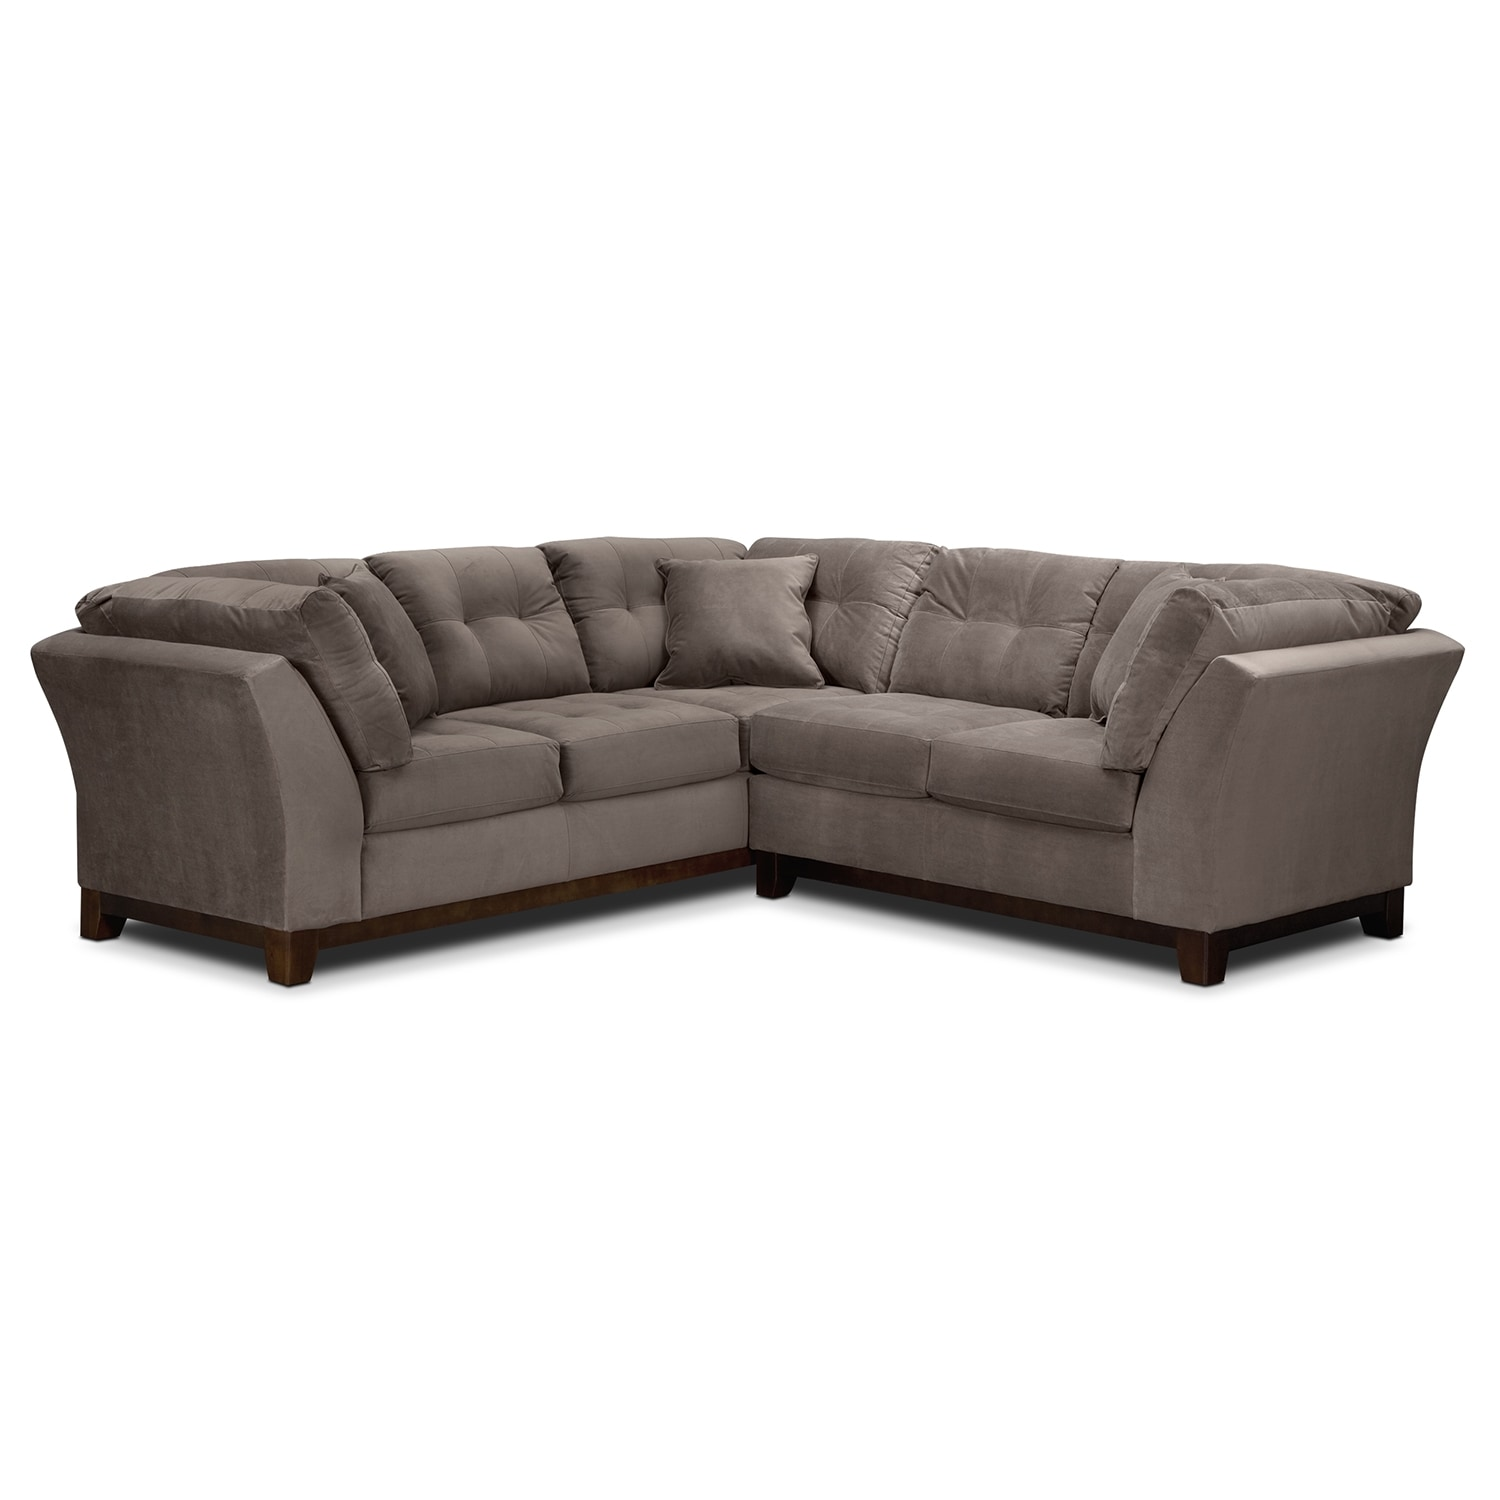 "Living Room Furniture - Solace 2-Piece Left-Facing 105"" Sofa Sectional - Gray"